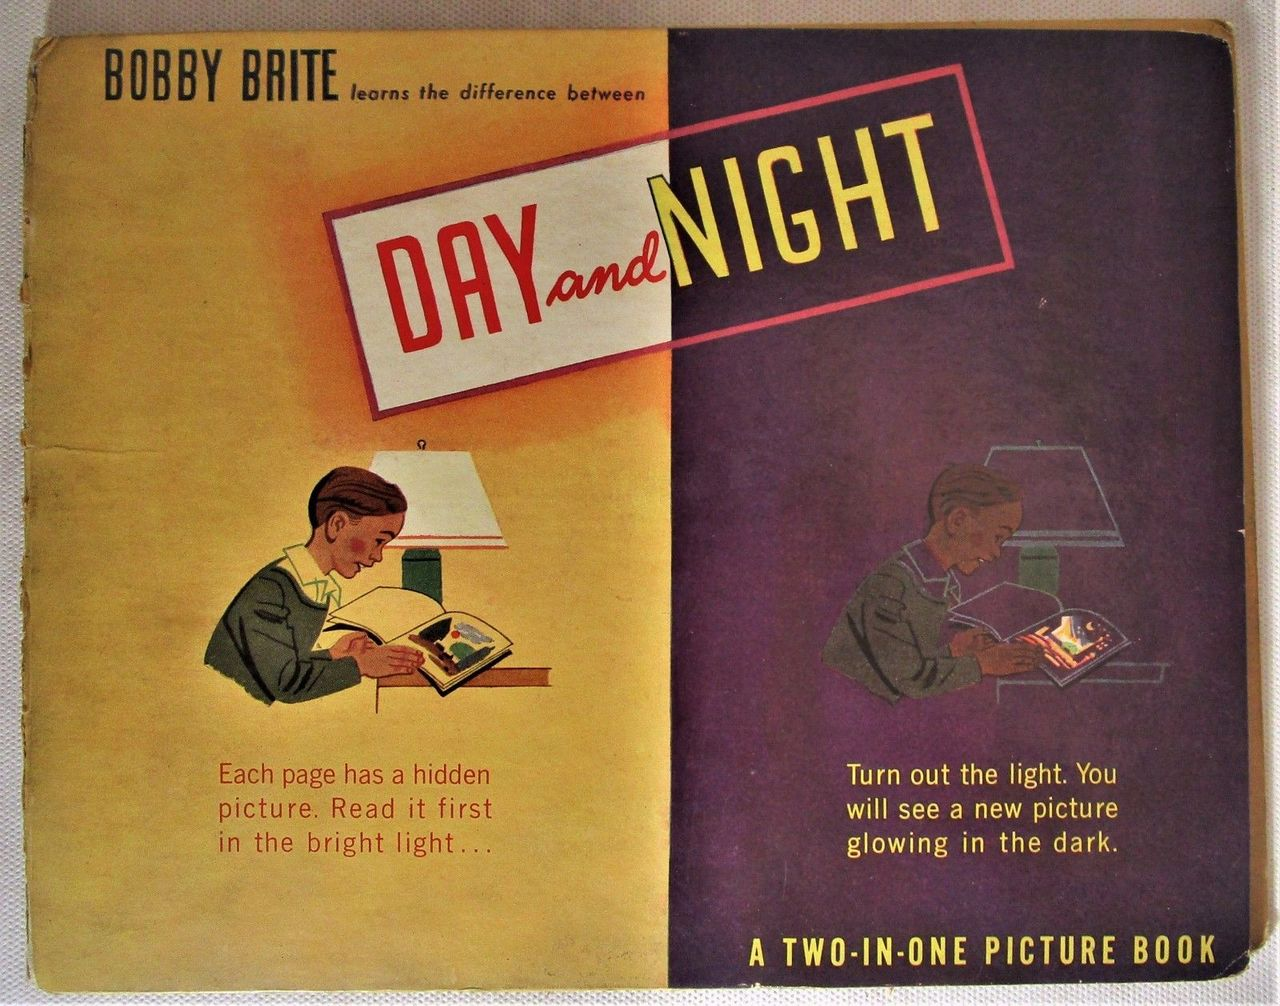 BOBBY BRITE LEARNS THE DIFFERENCE BETWEEN DAY AND NIGHT, by Richard Fechheimer; Denver L Gillen (illus) - 1946